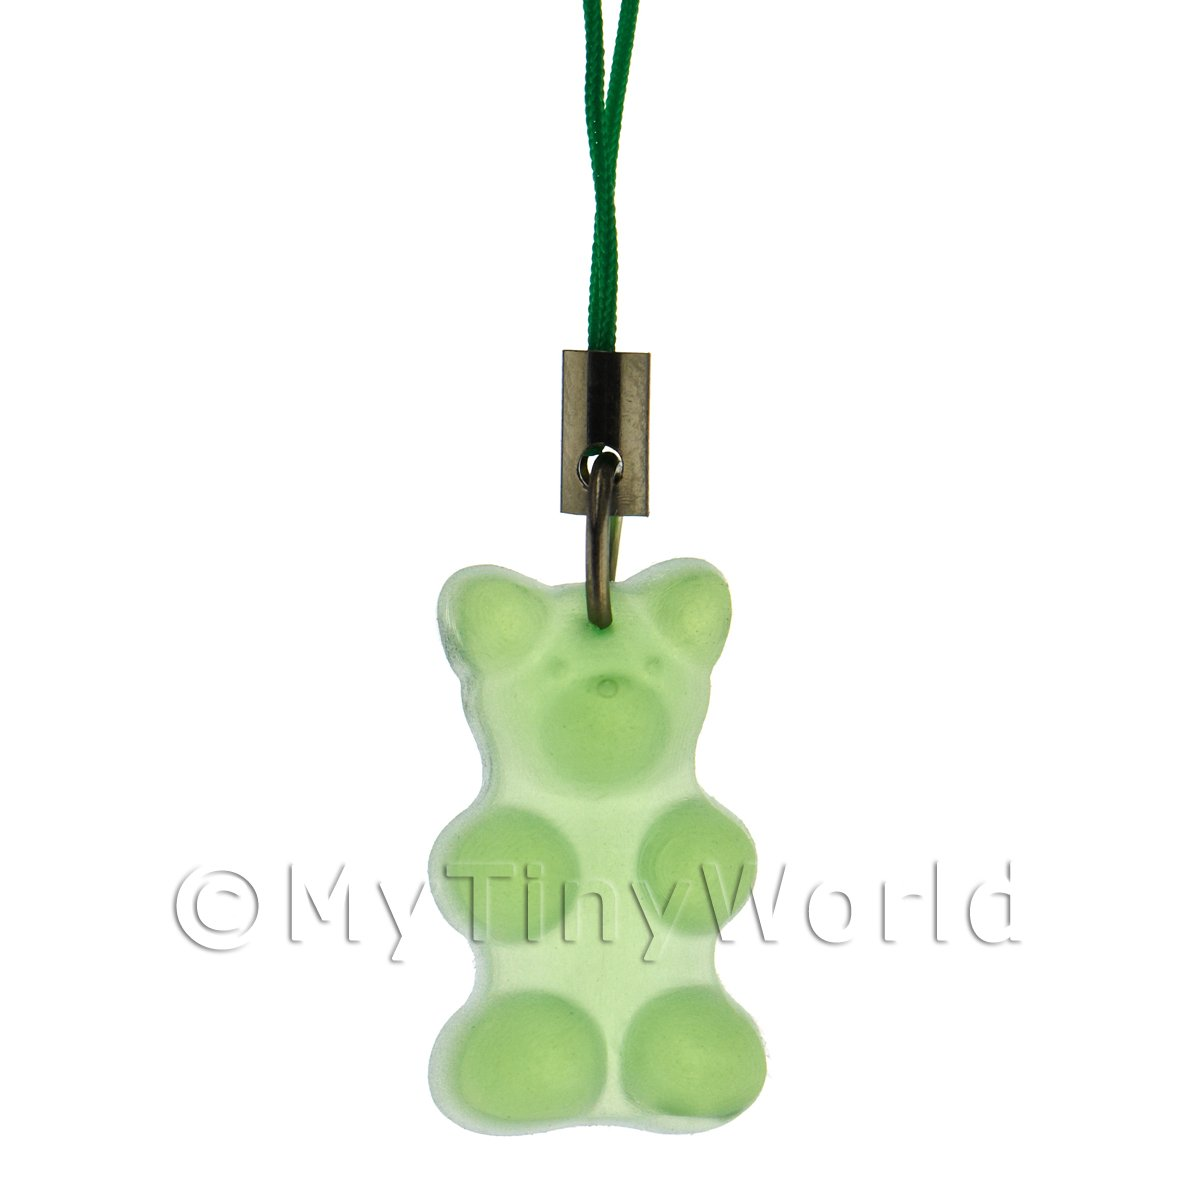 Translucent Pale Green Jelly Bear Phone Charm